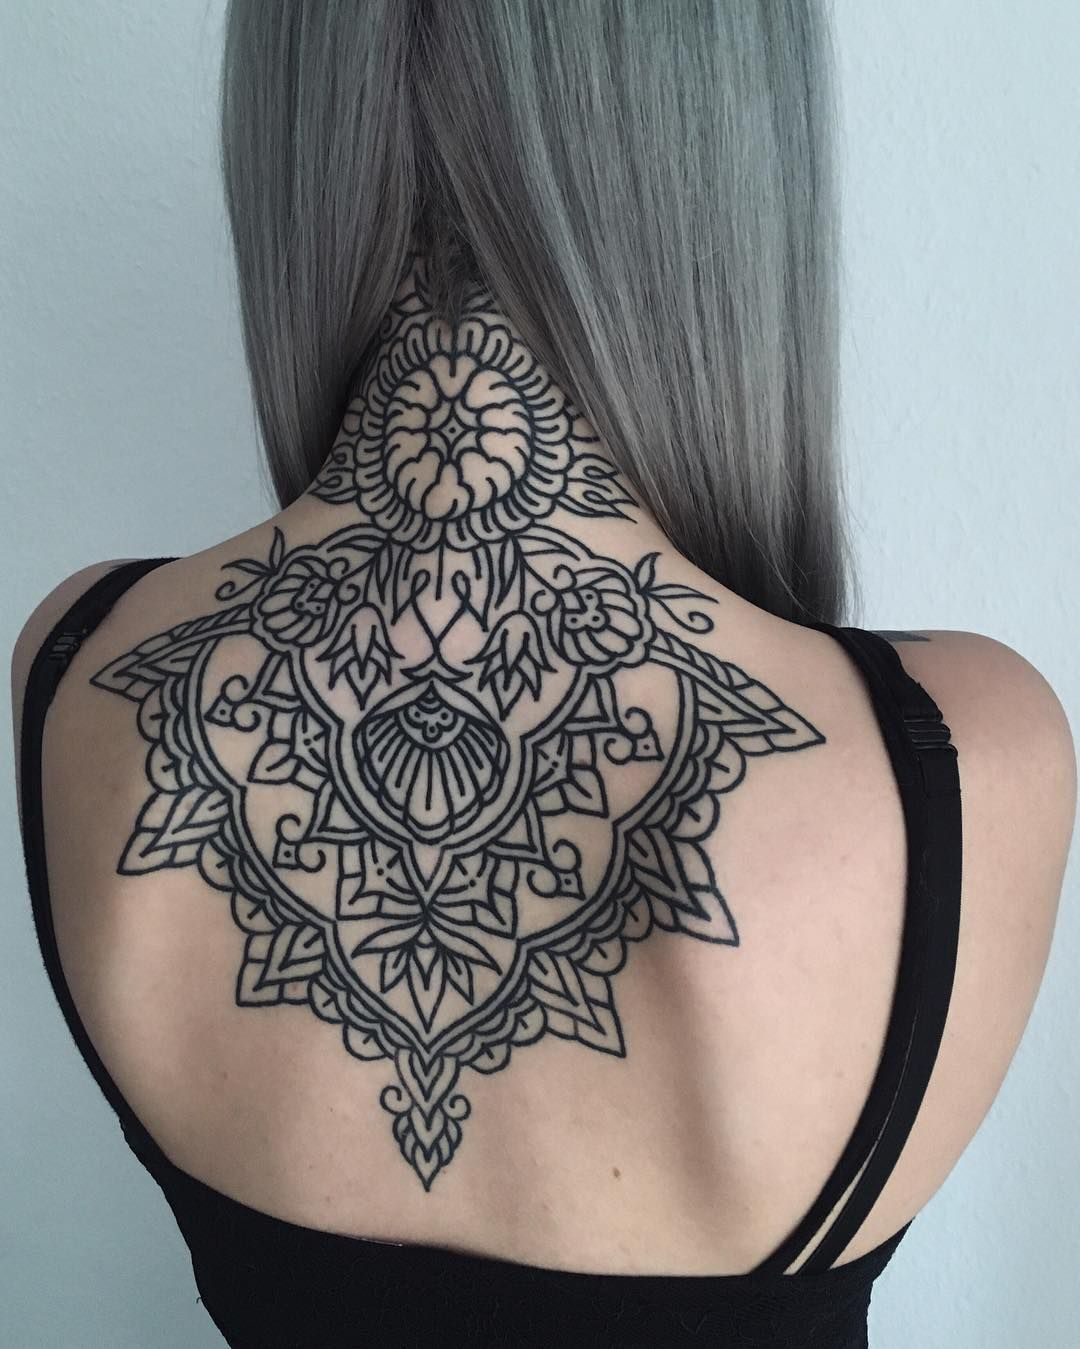 23 Cool Back Tattoos Ideas for Women